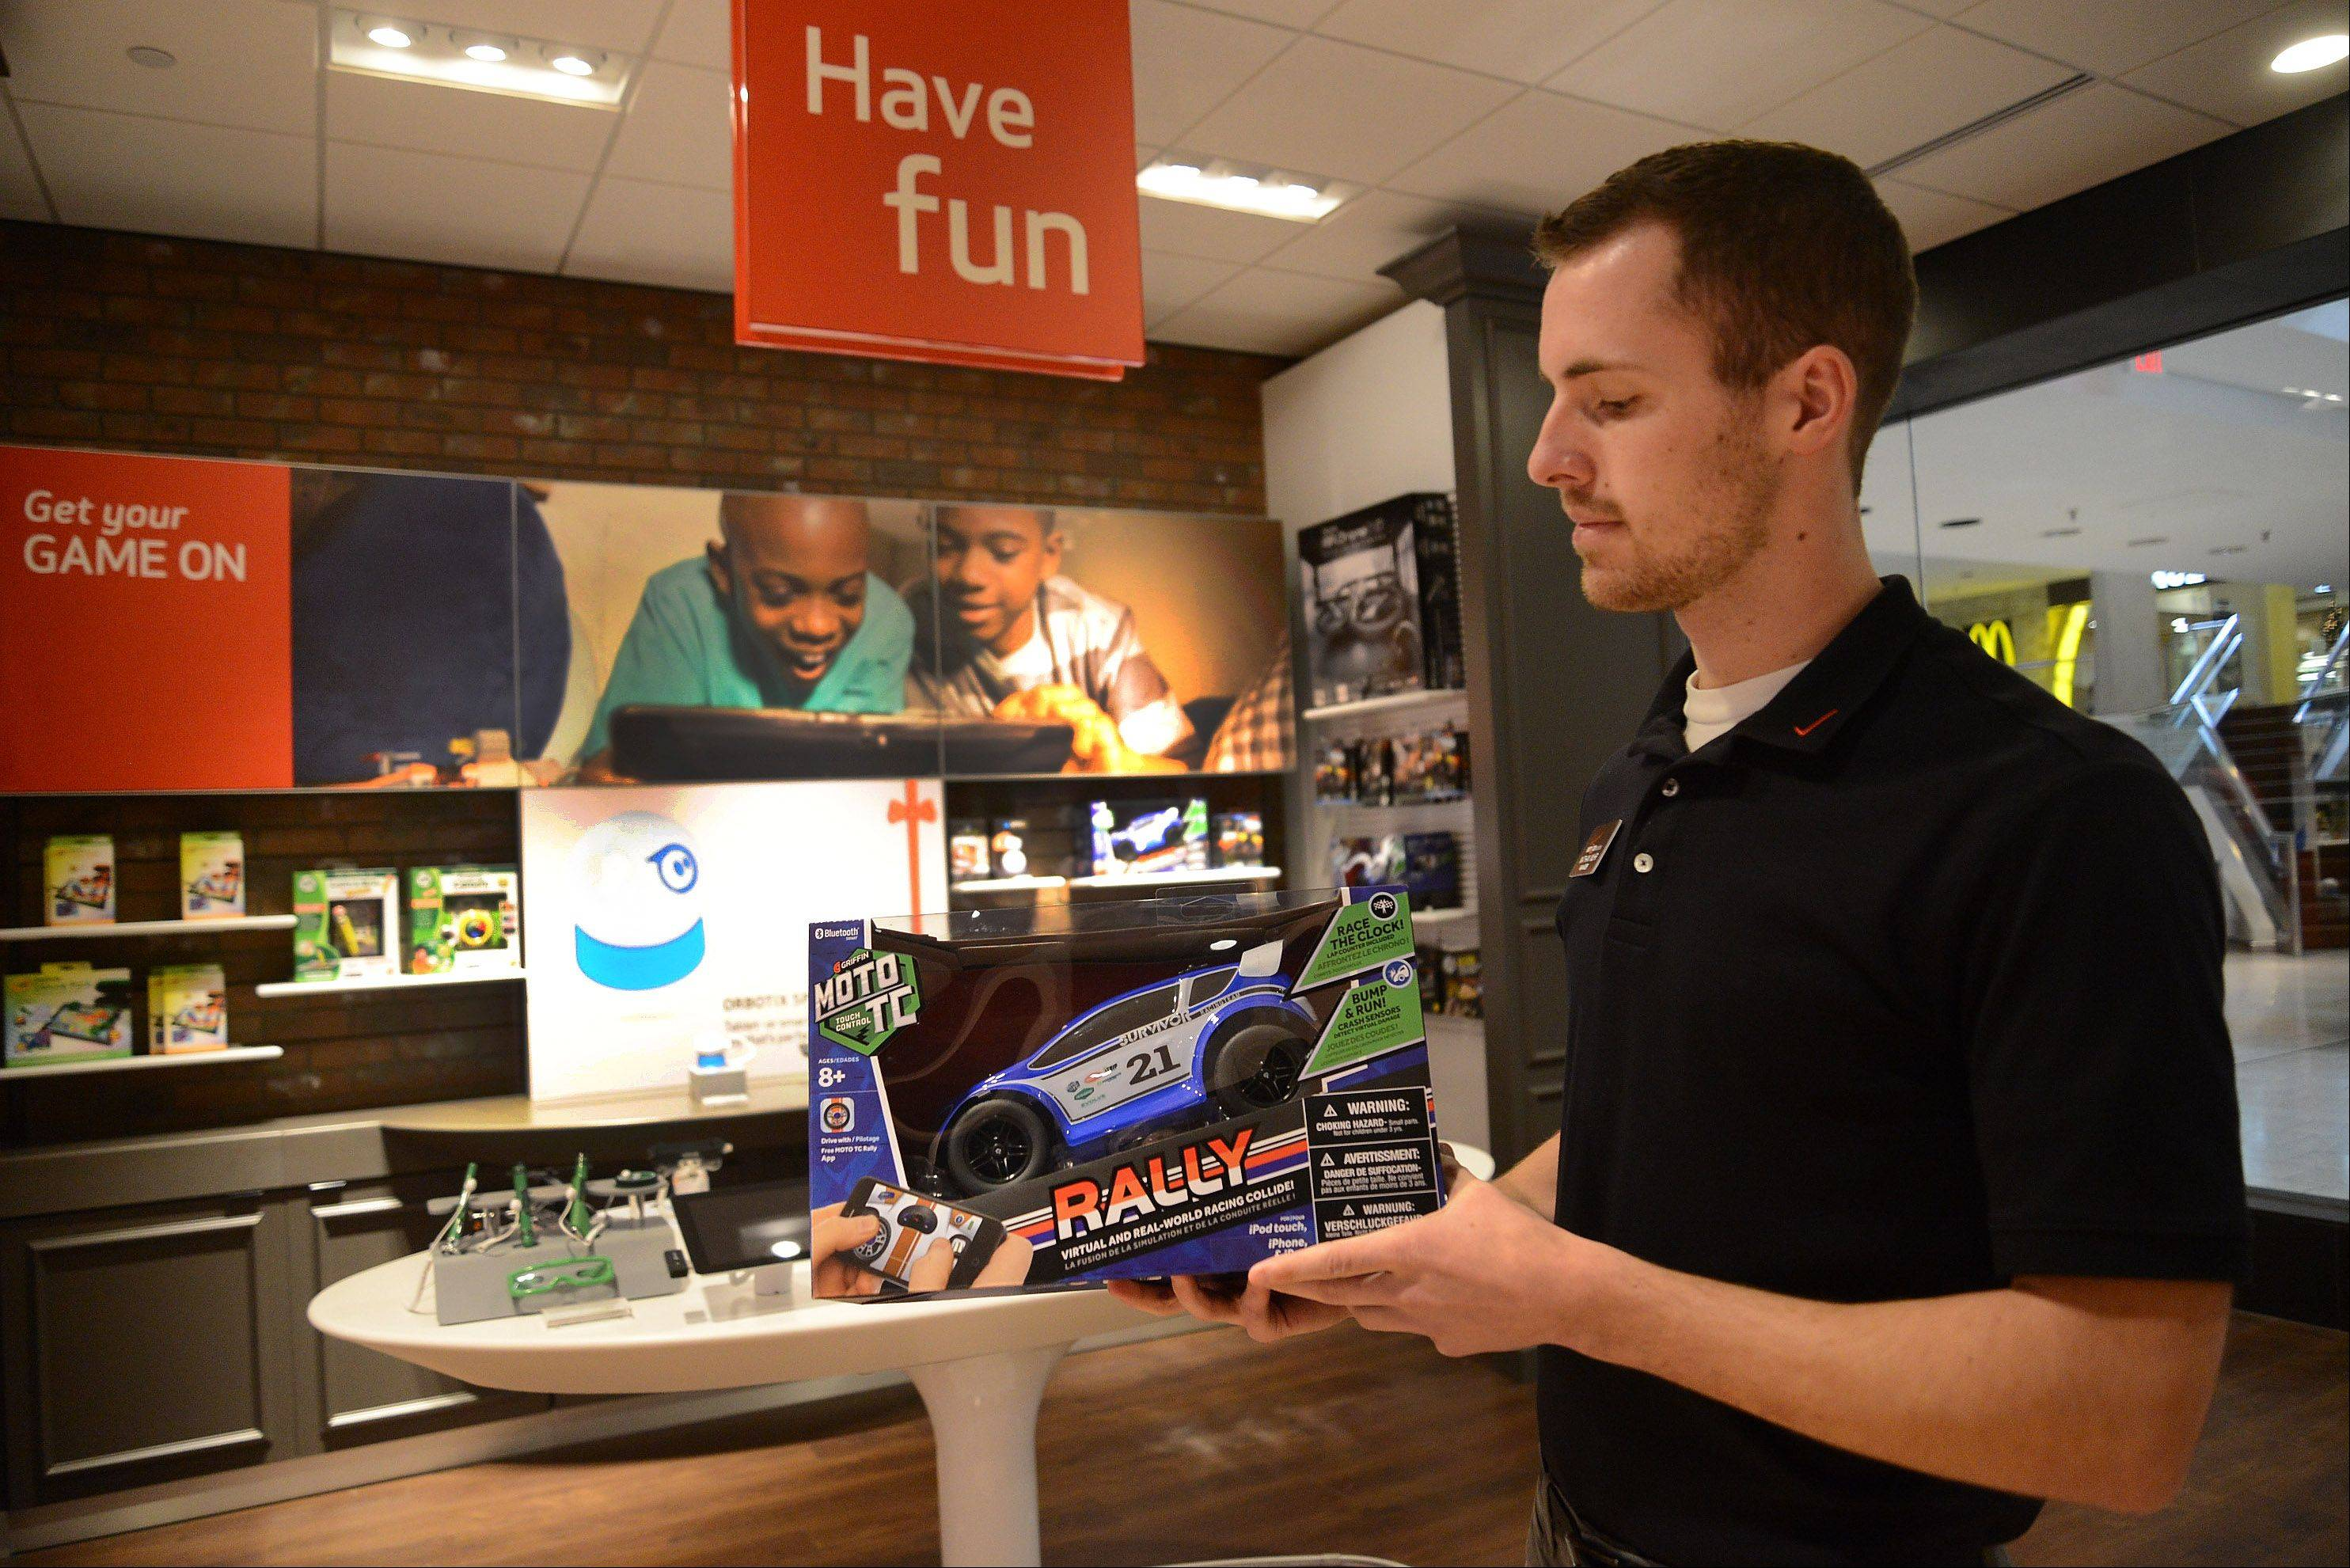 Solutions Manager Nathan Muhr holds a Moto TC Rally Car at the Have Fun Smart Zone inside Verizon Wireless' new Smart Store in Woodfield Mall.